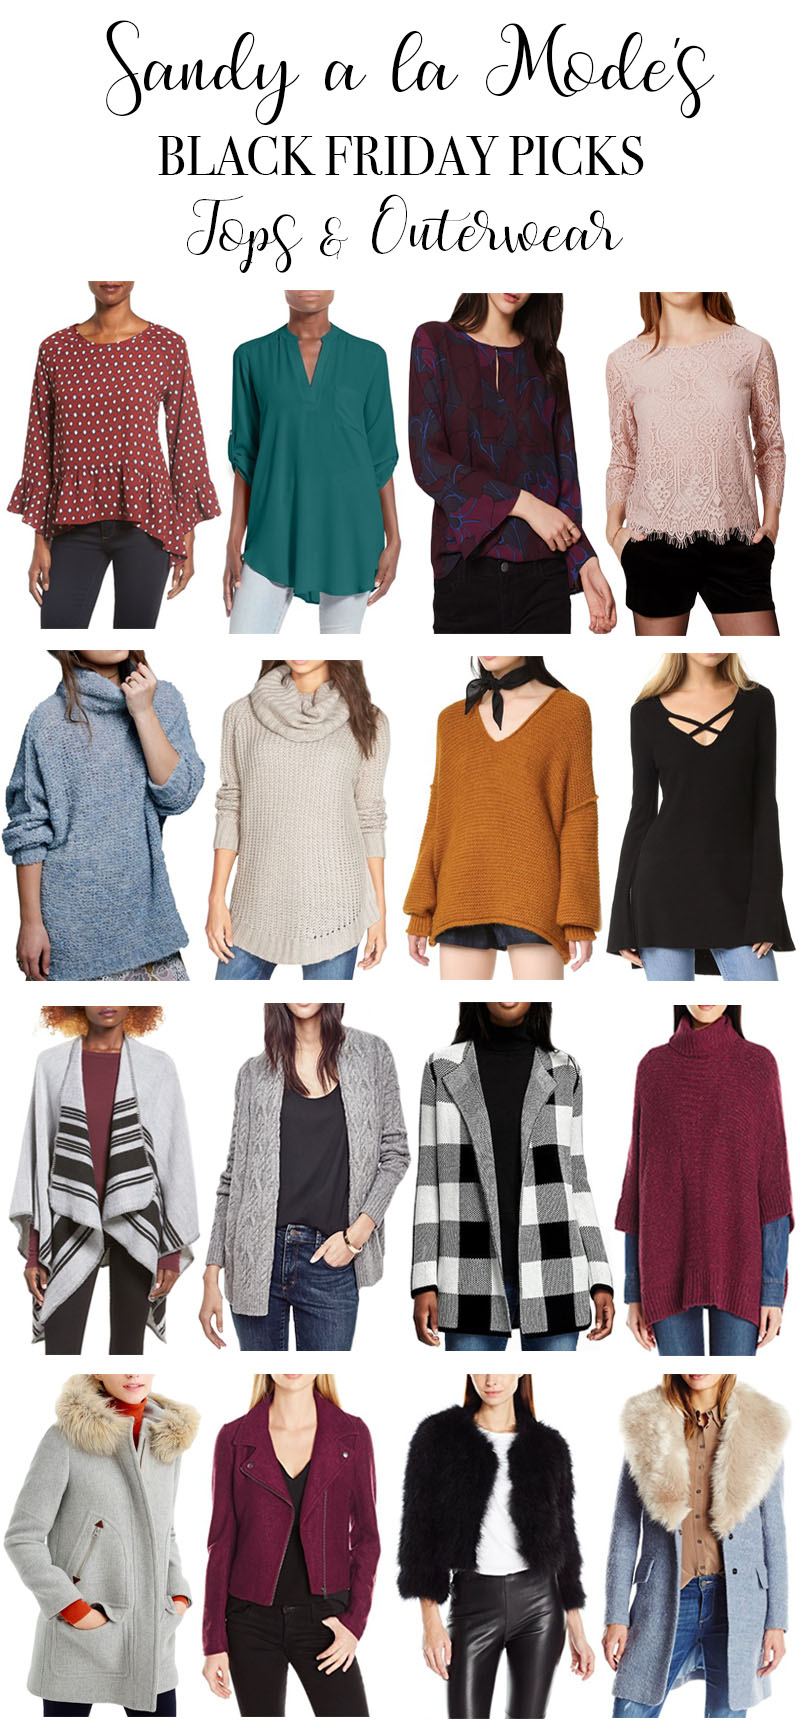 d959800ae19 The Ultimate Women and Kid s Black Friday Fashion Sale Guide ...